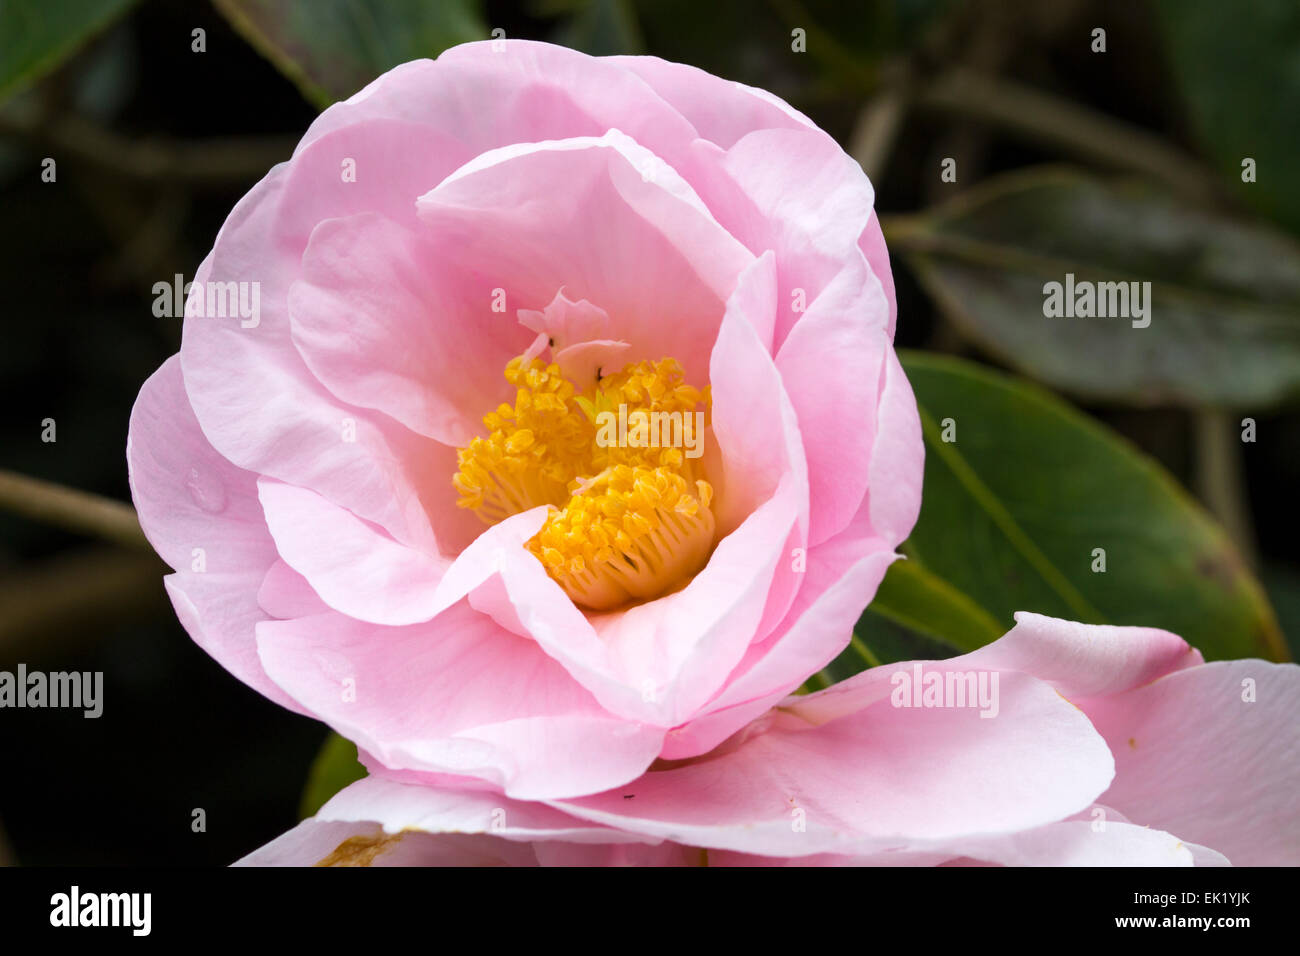 Opening flower of the spring blooming evergreen, Camellia reticulata x saluenensis 'Salutation' - Stock Image